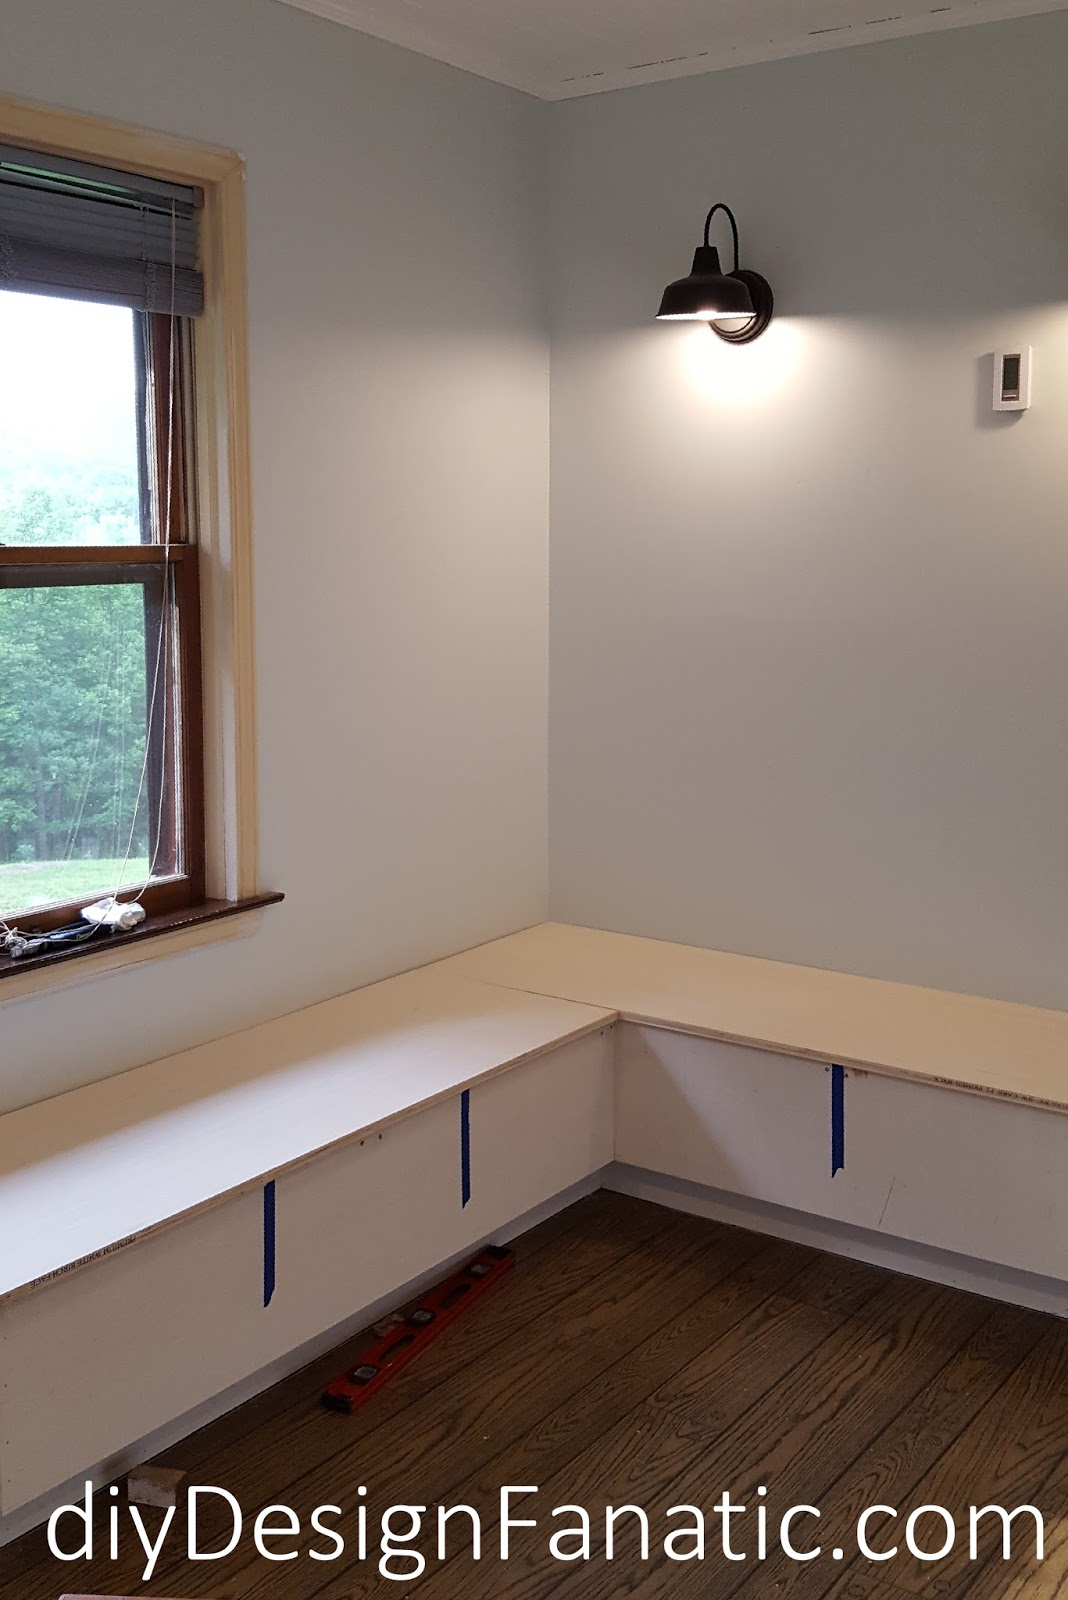 I Wanted The Front And Sides Of The Banquette To Look Like